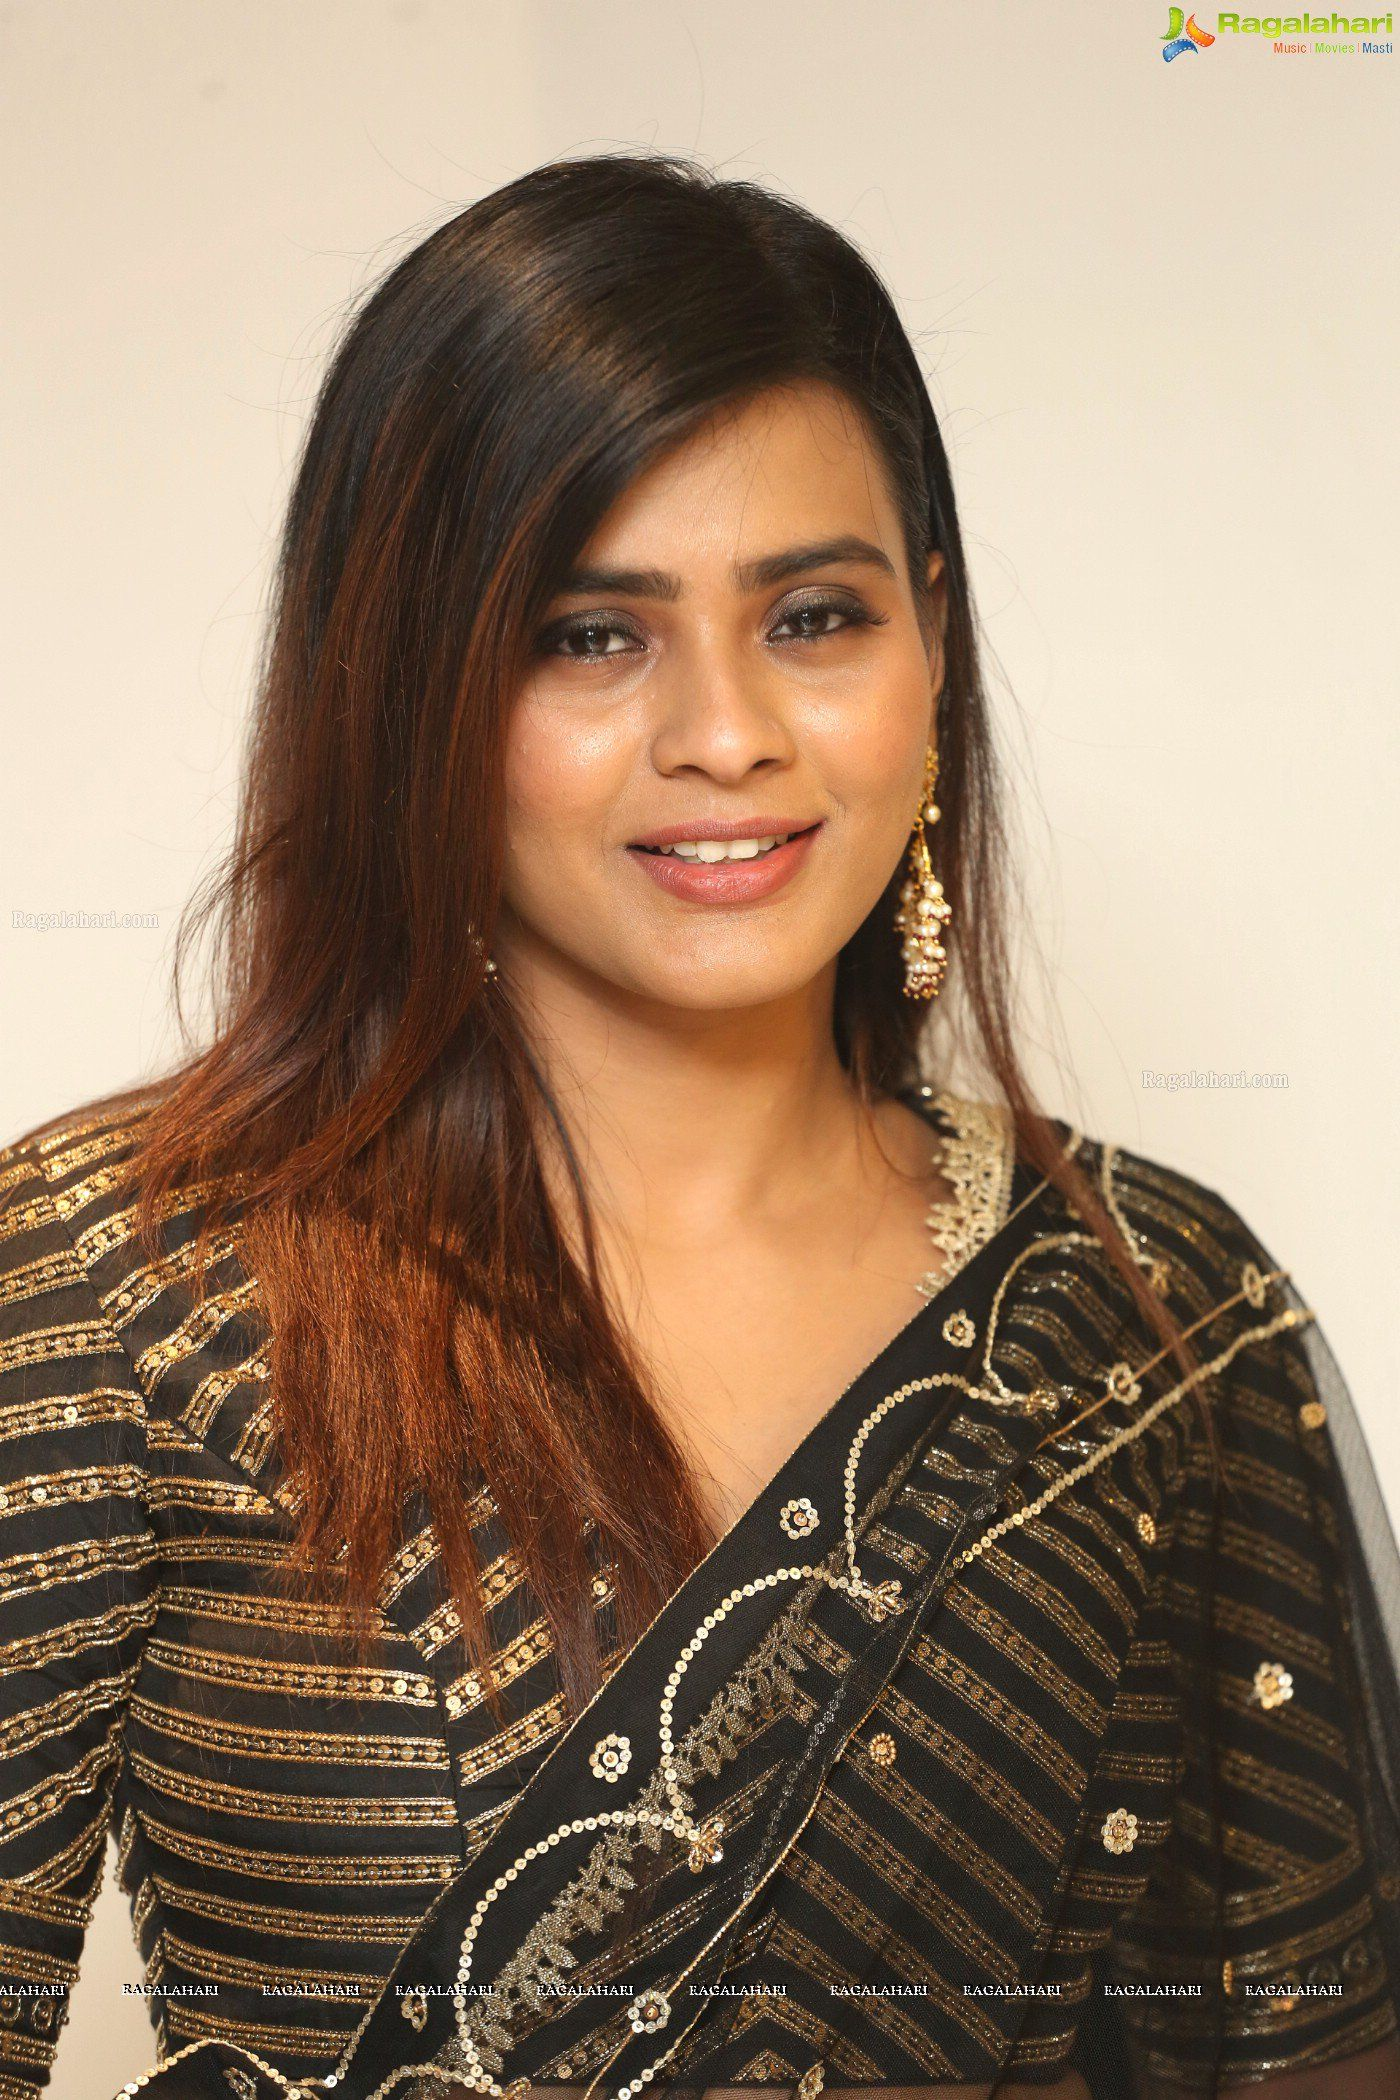 Pin on Indian actresses